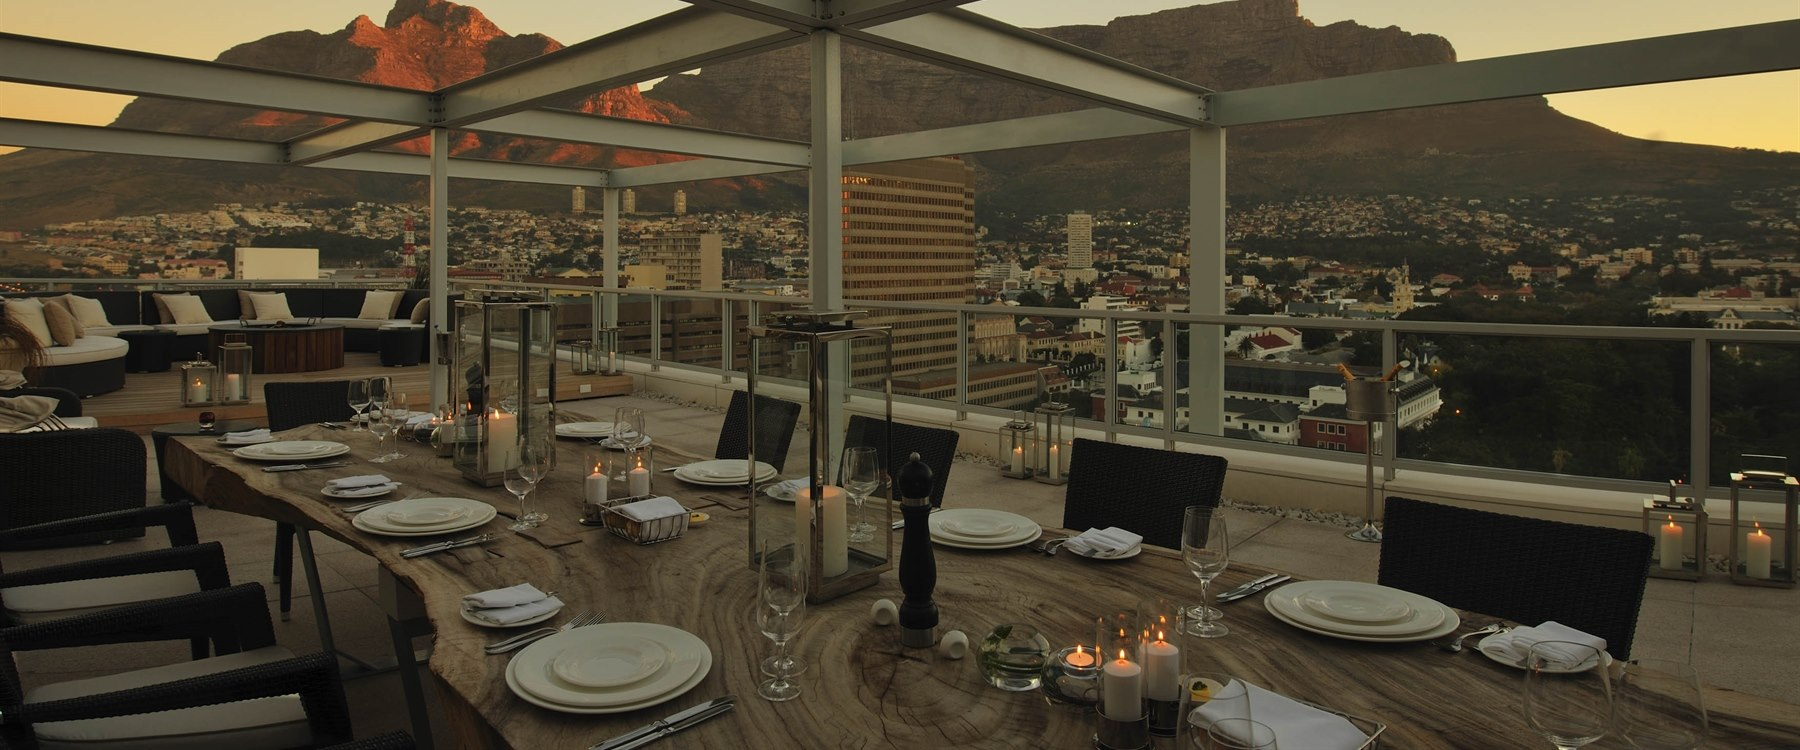 Roof top dining at Taj Cape Town